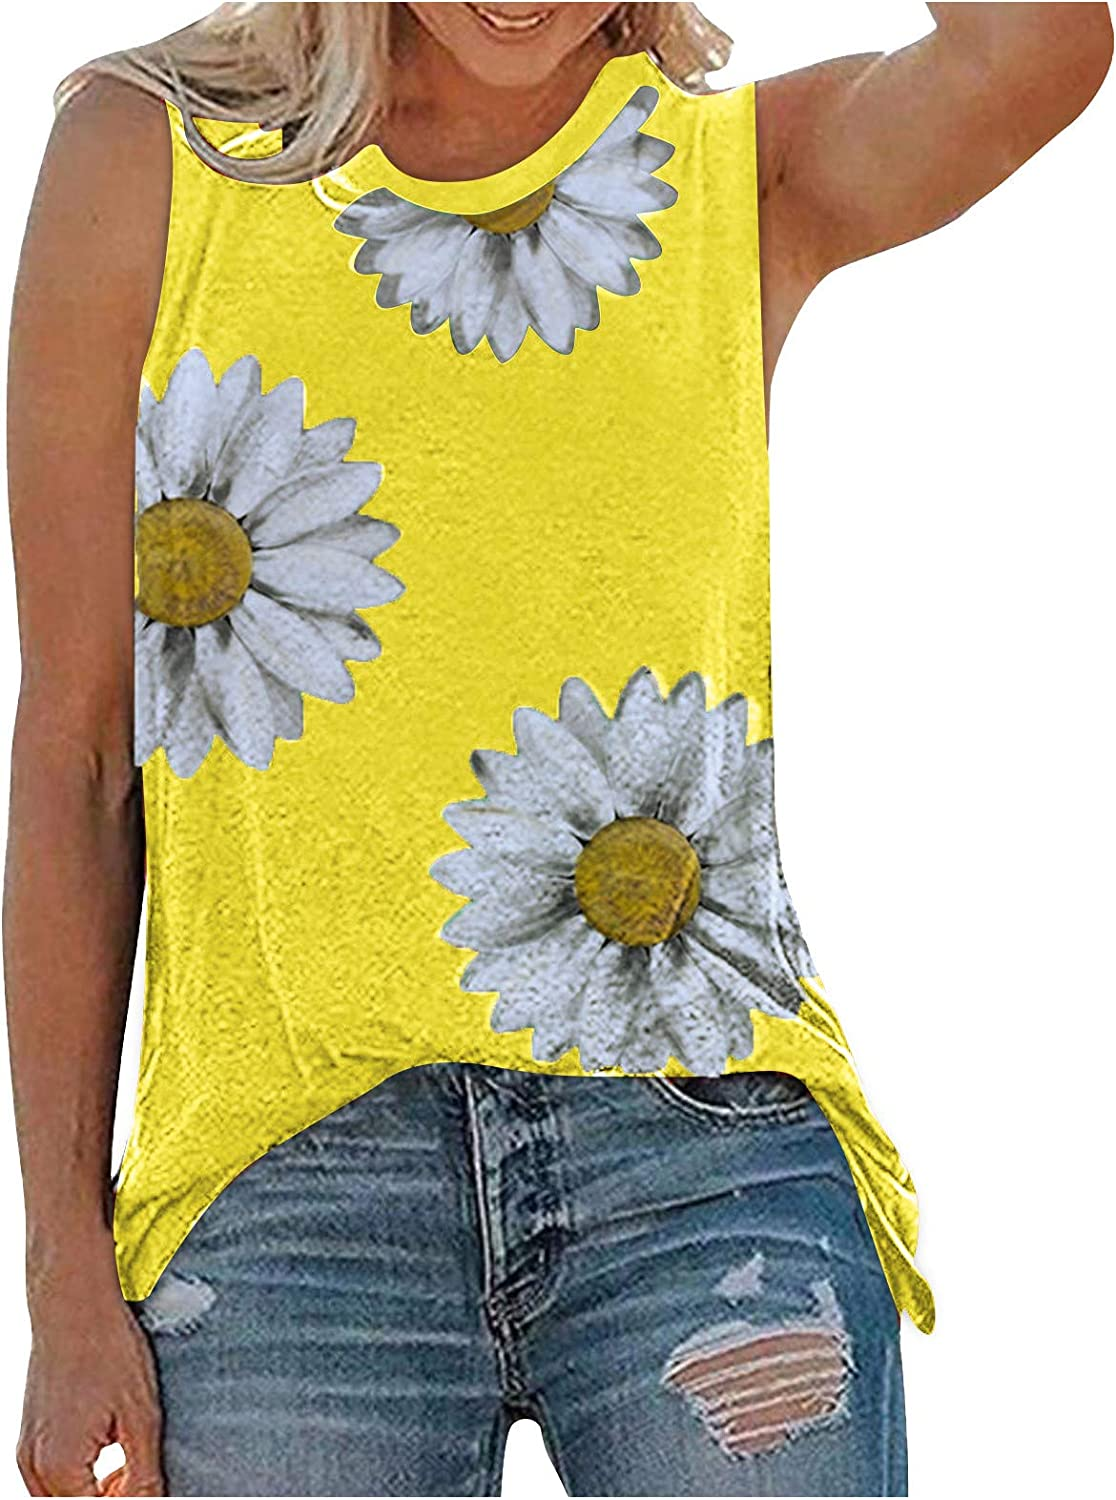 Gerichy Tank Tops for Women Casual, Womens Summer Loose Fit Sleeveless Fashion Tank Tees Shirts Blouses Vest Tops